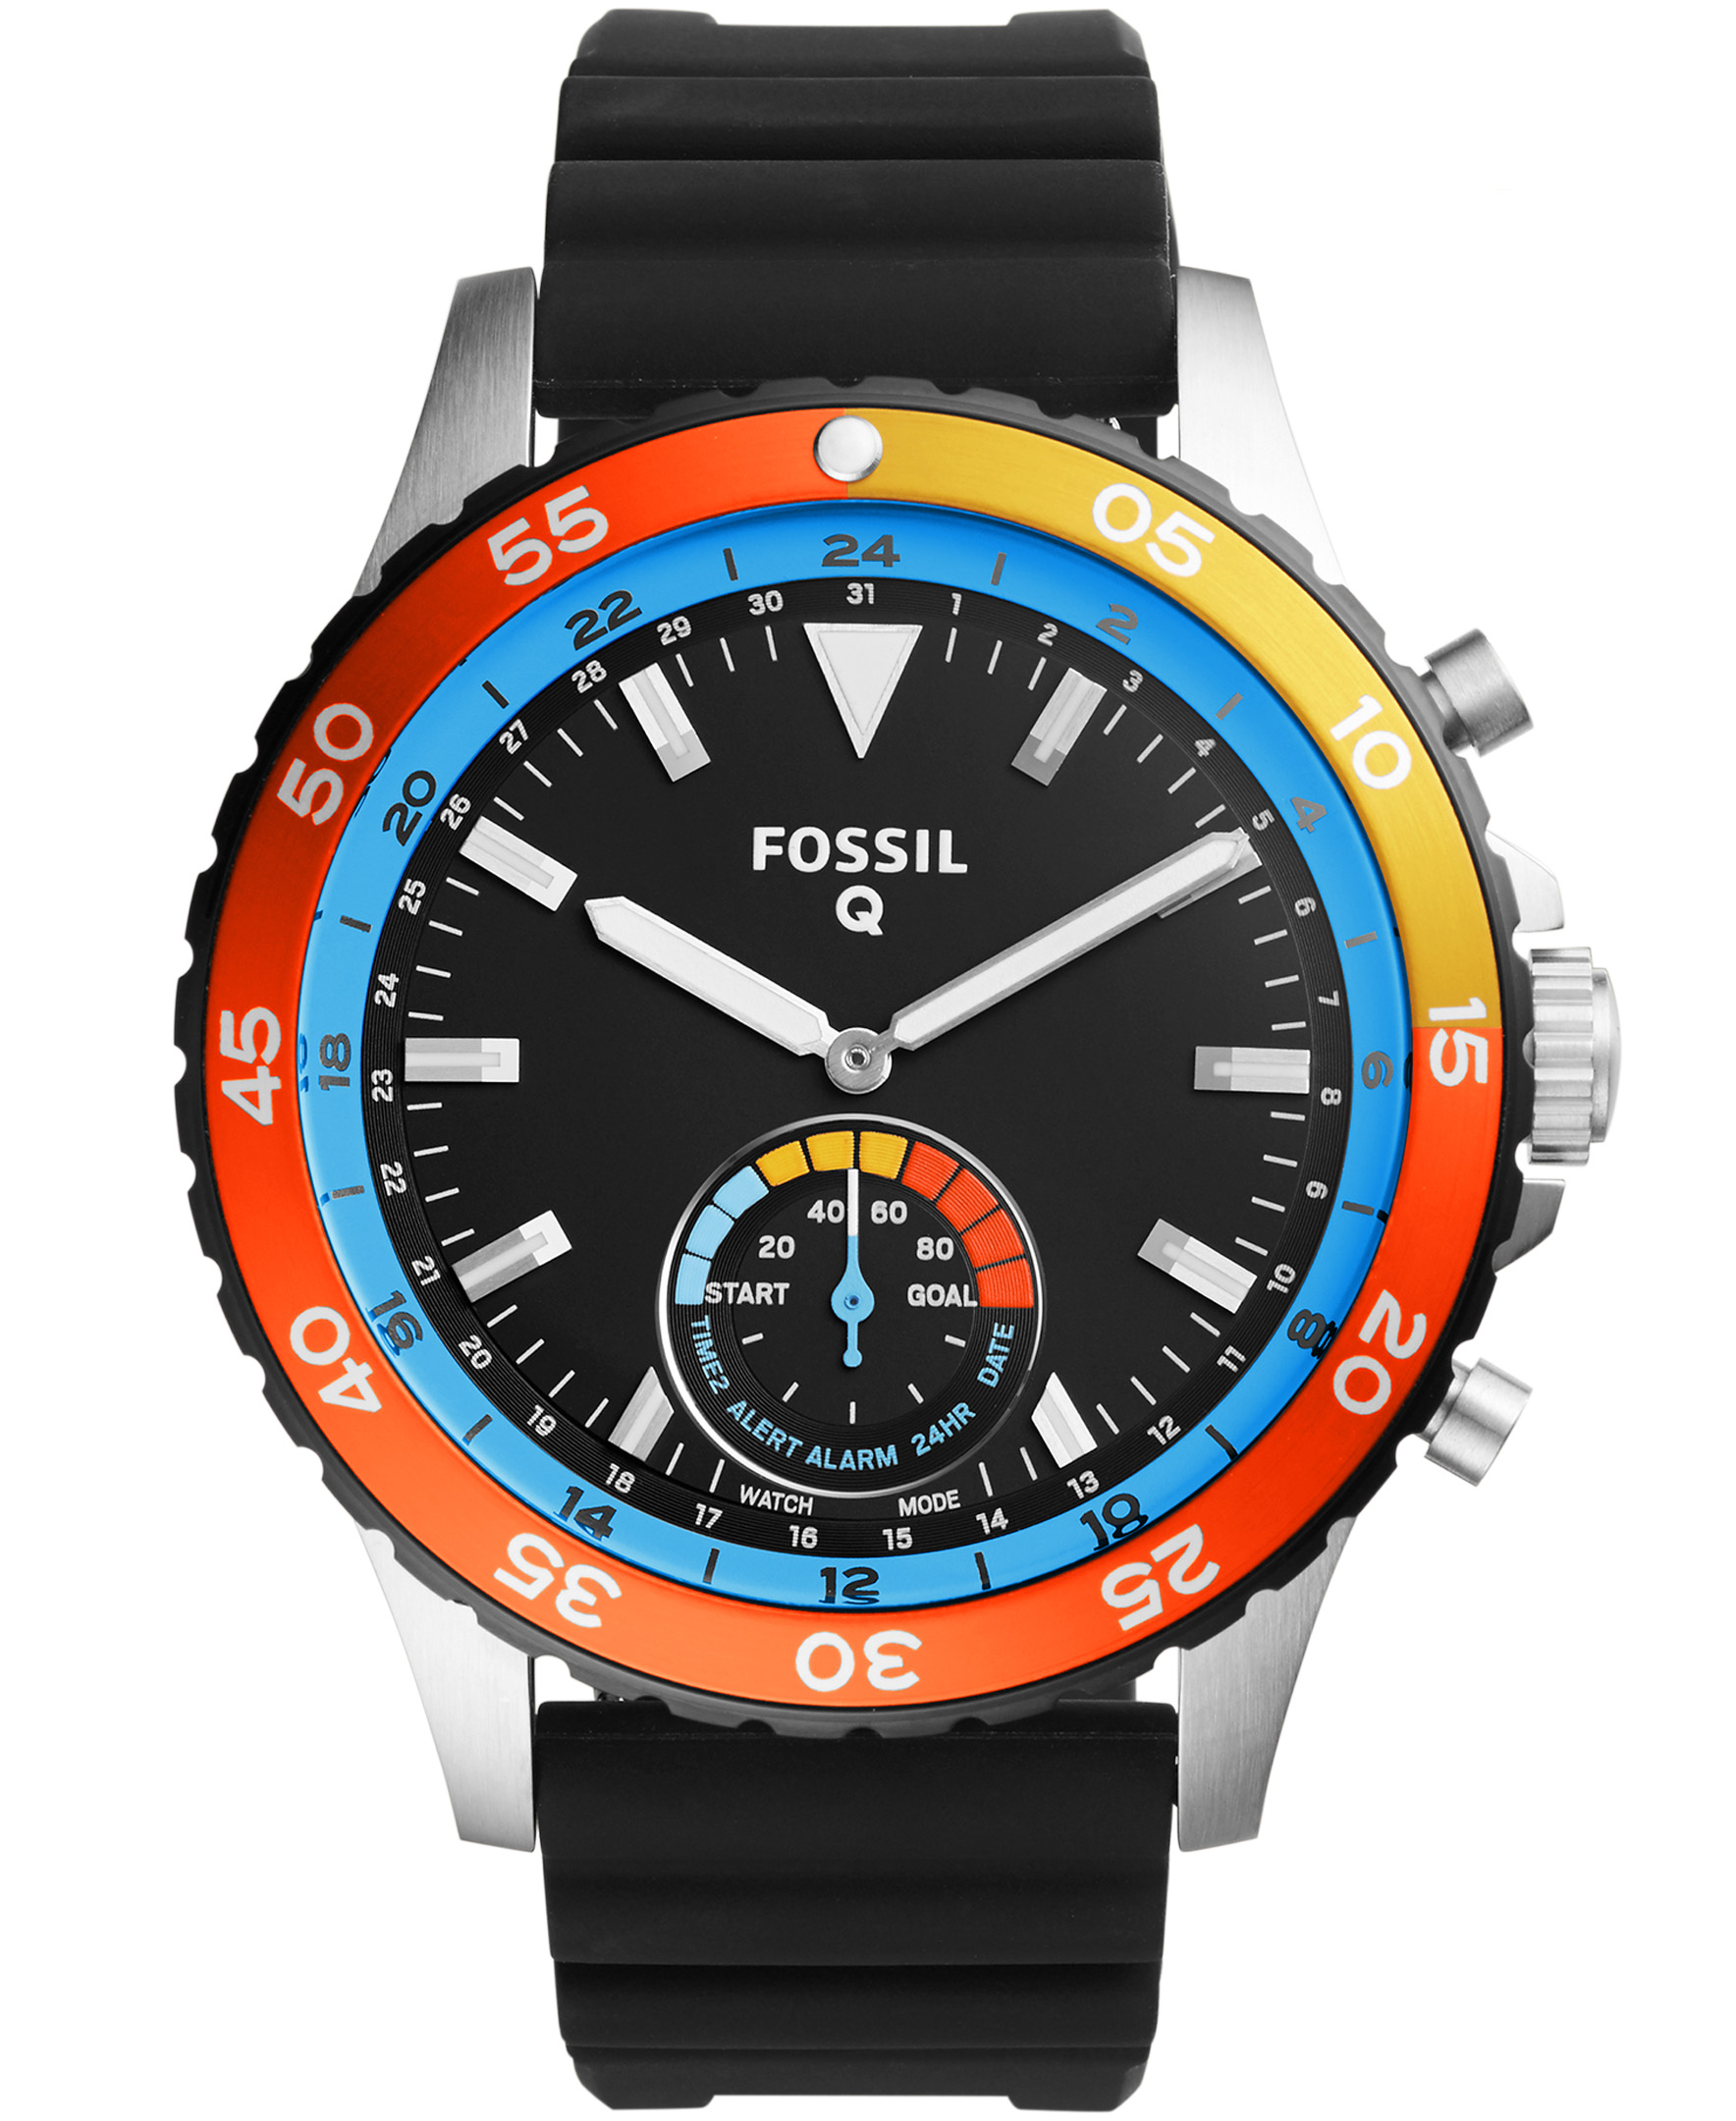 Fossil Launches Four New Hybrid Smartwatches For the Q Lineup (With Pricing)